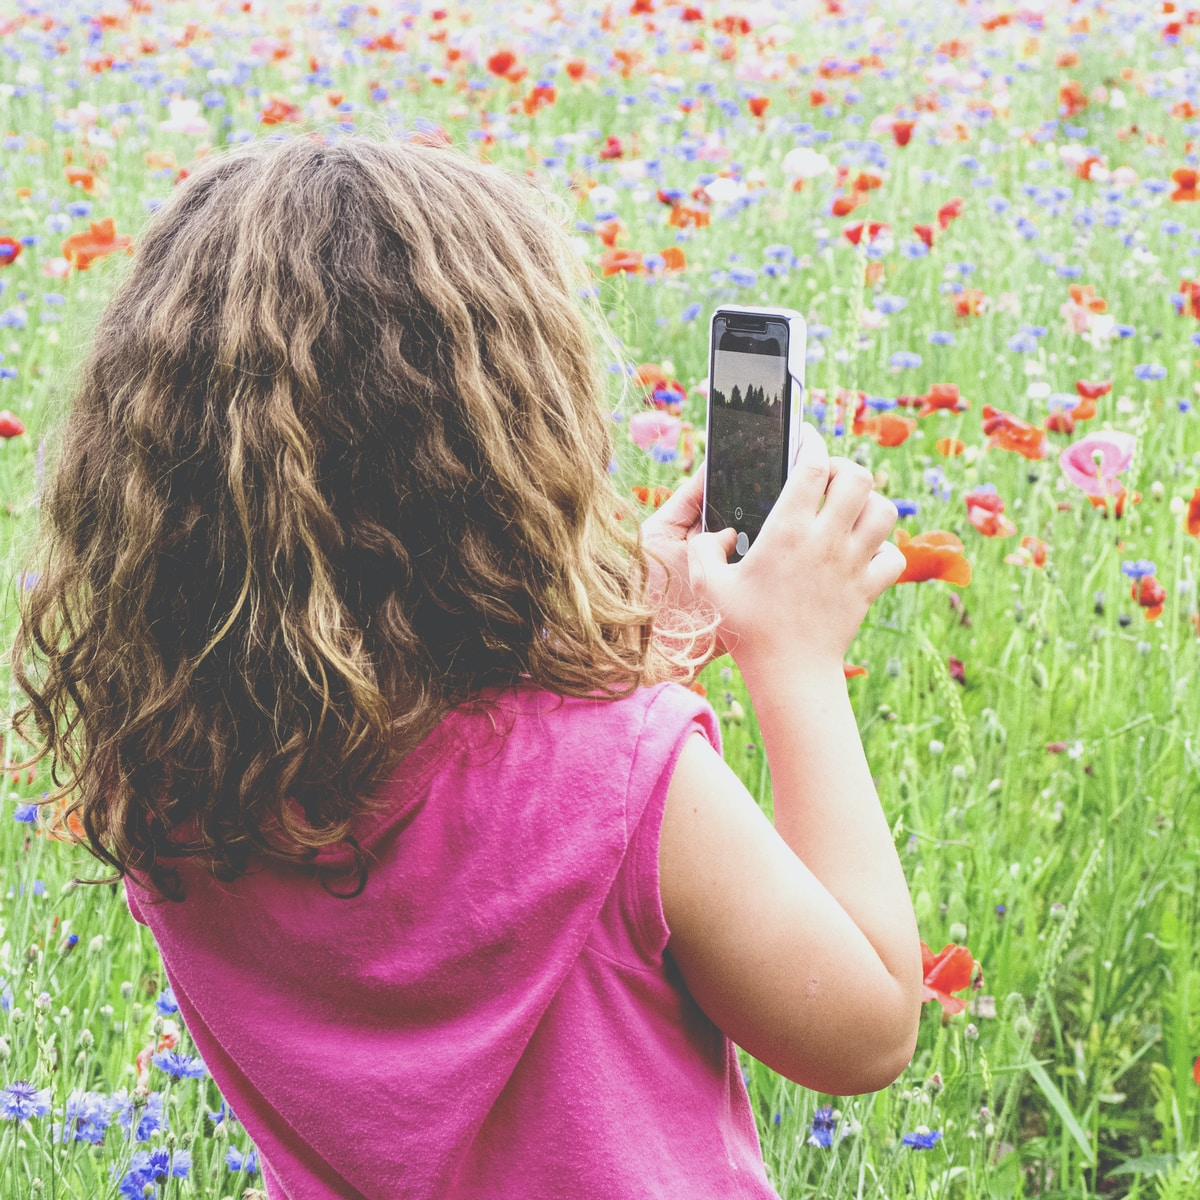 girl in pink shirt taking photo of pink flowers